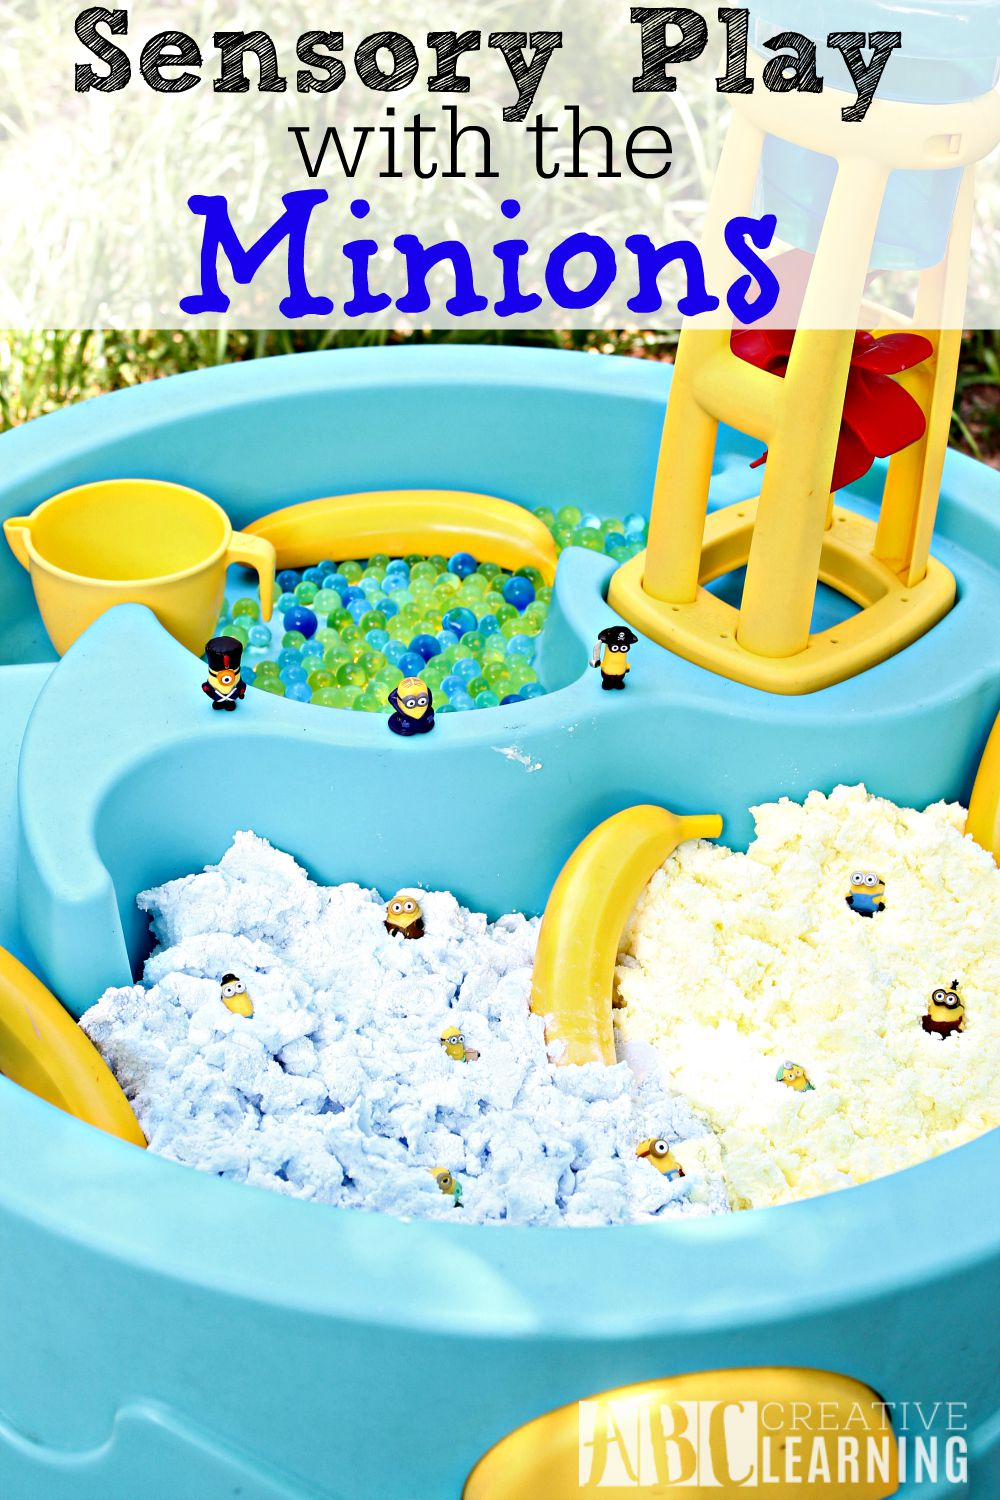 Sensory Play with the Minions activity is perfect for letting children explore through play and imagination!